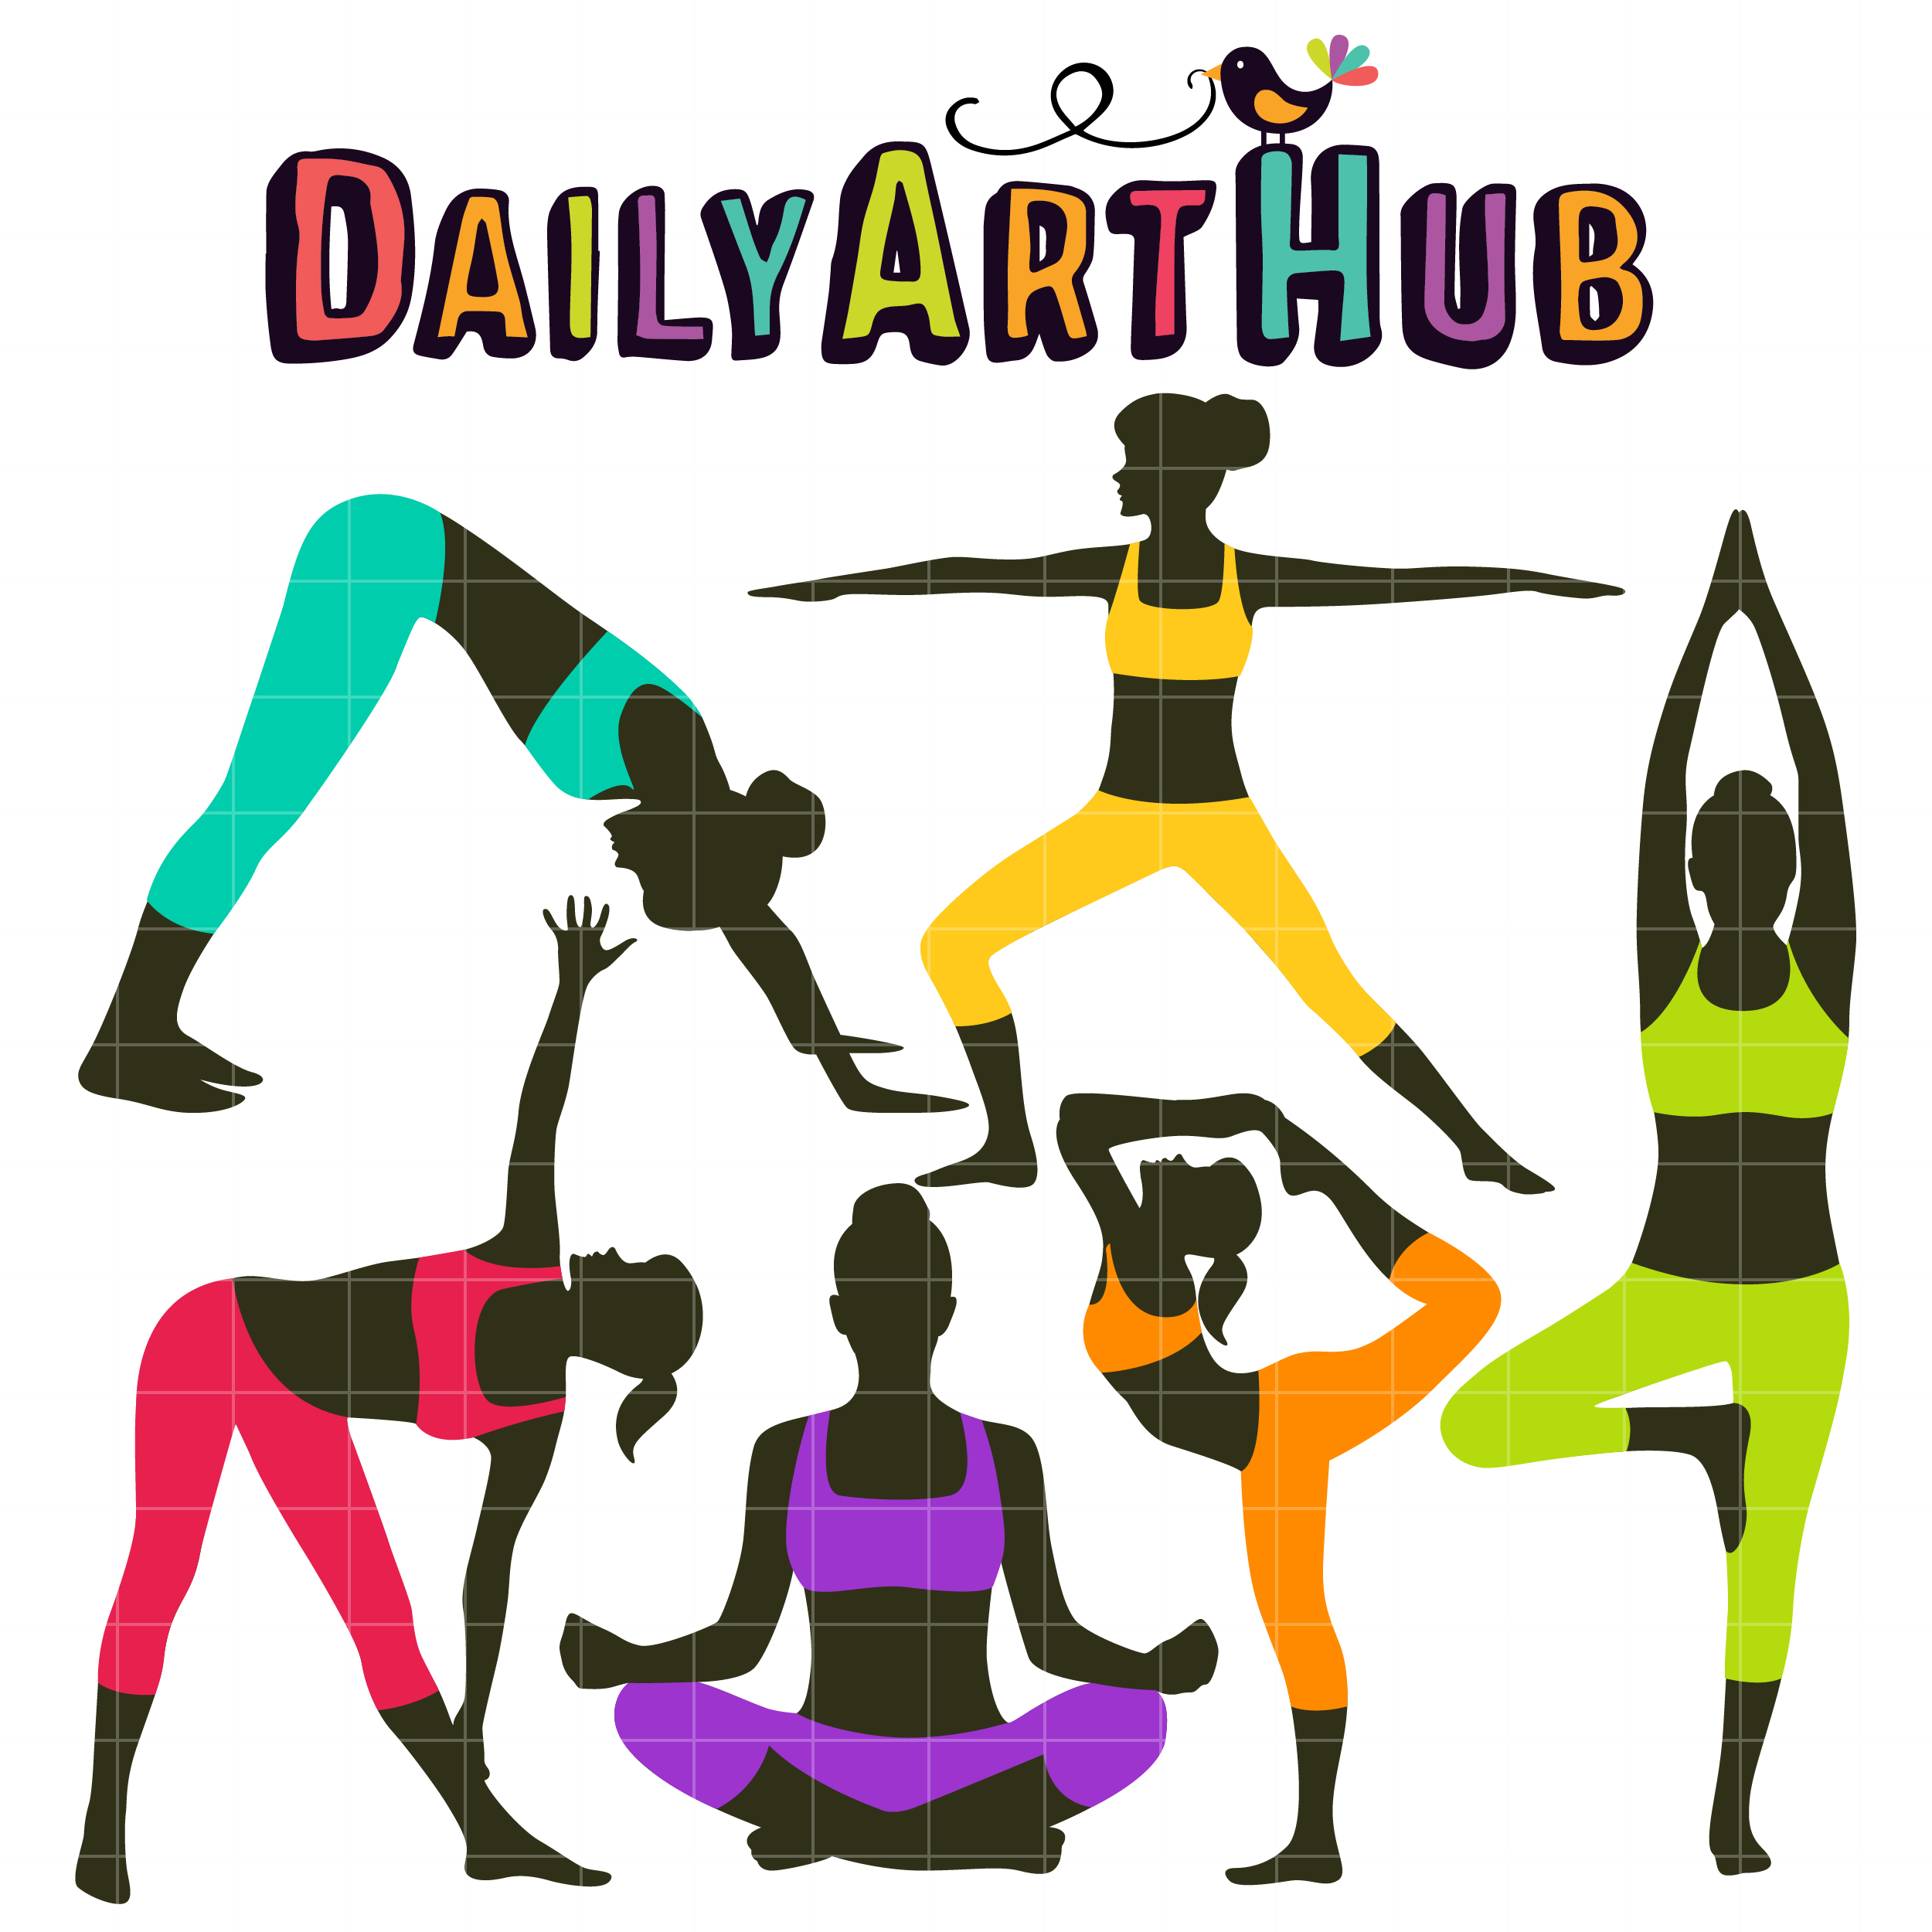 Yoga Poses Clip Art Set Daily Art Hub Free Clip Art Everyday